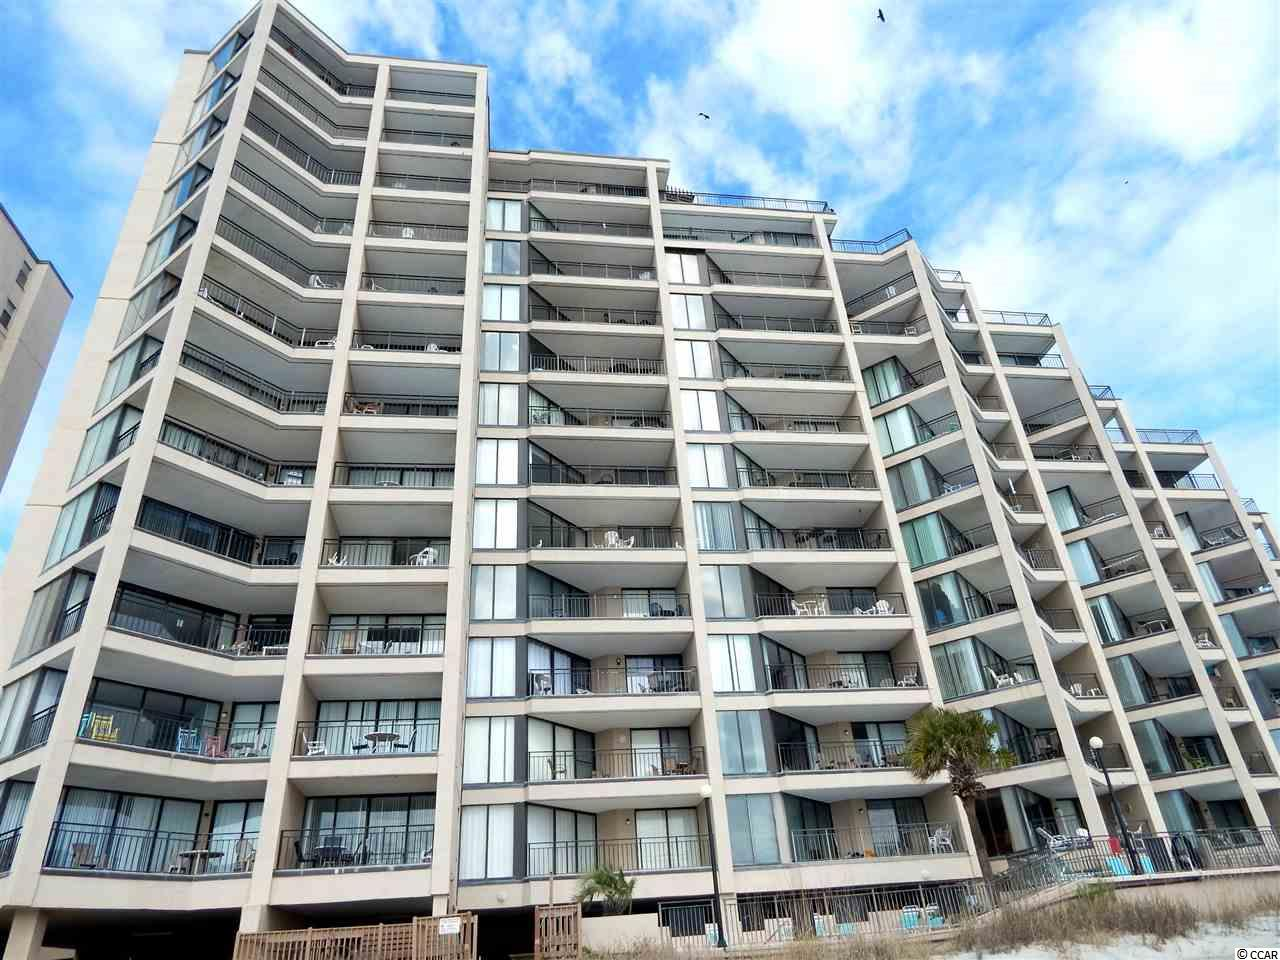 Contact your real estate agent to view this  Surfmaster II condo for sale